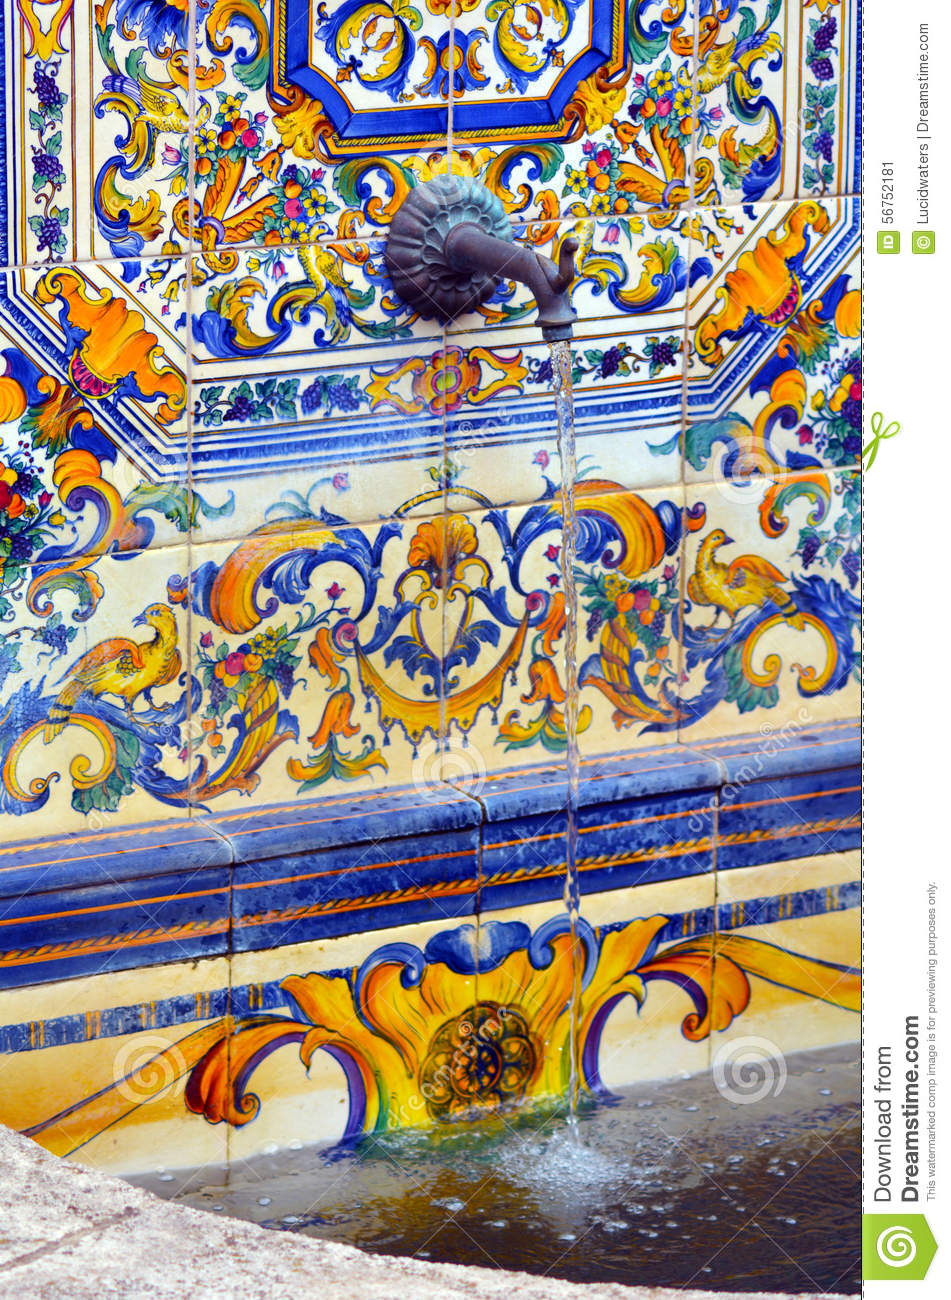 Colourful Spanish Tiles Decoration On Water Fountain Stock